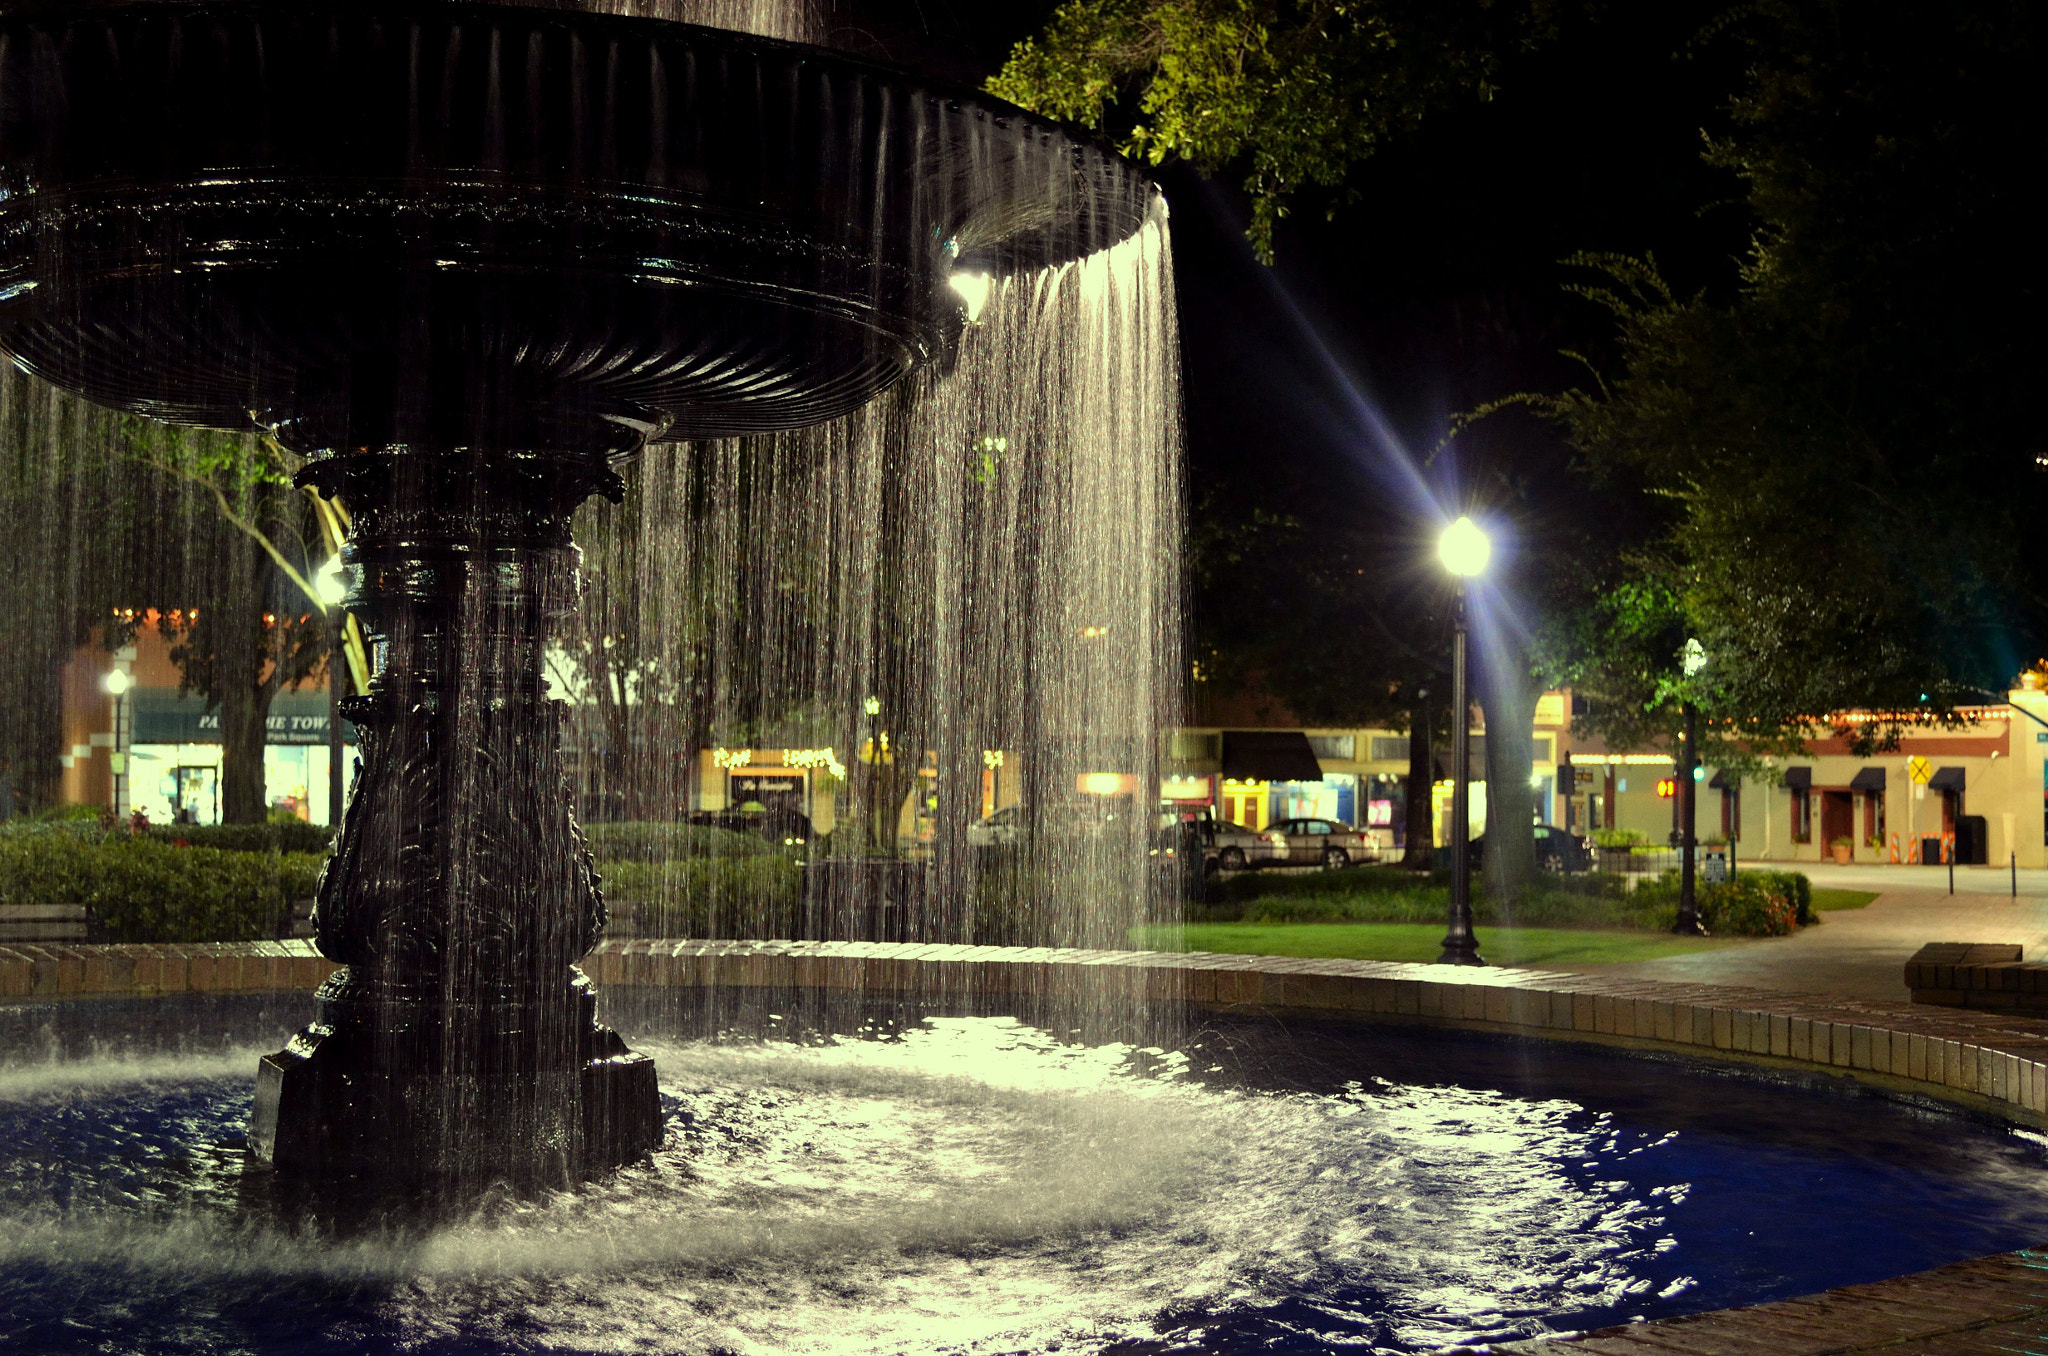 Photograph Fountain by Senthil Balakrishnan on 500px